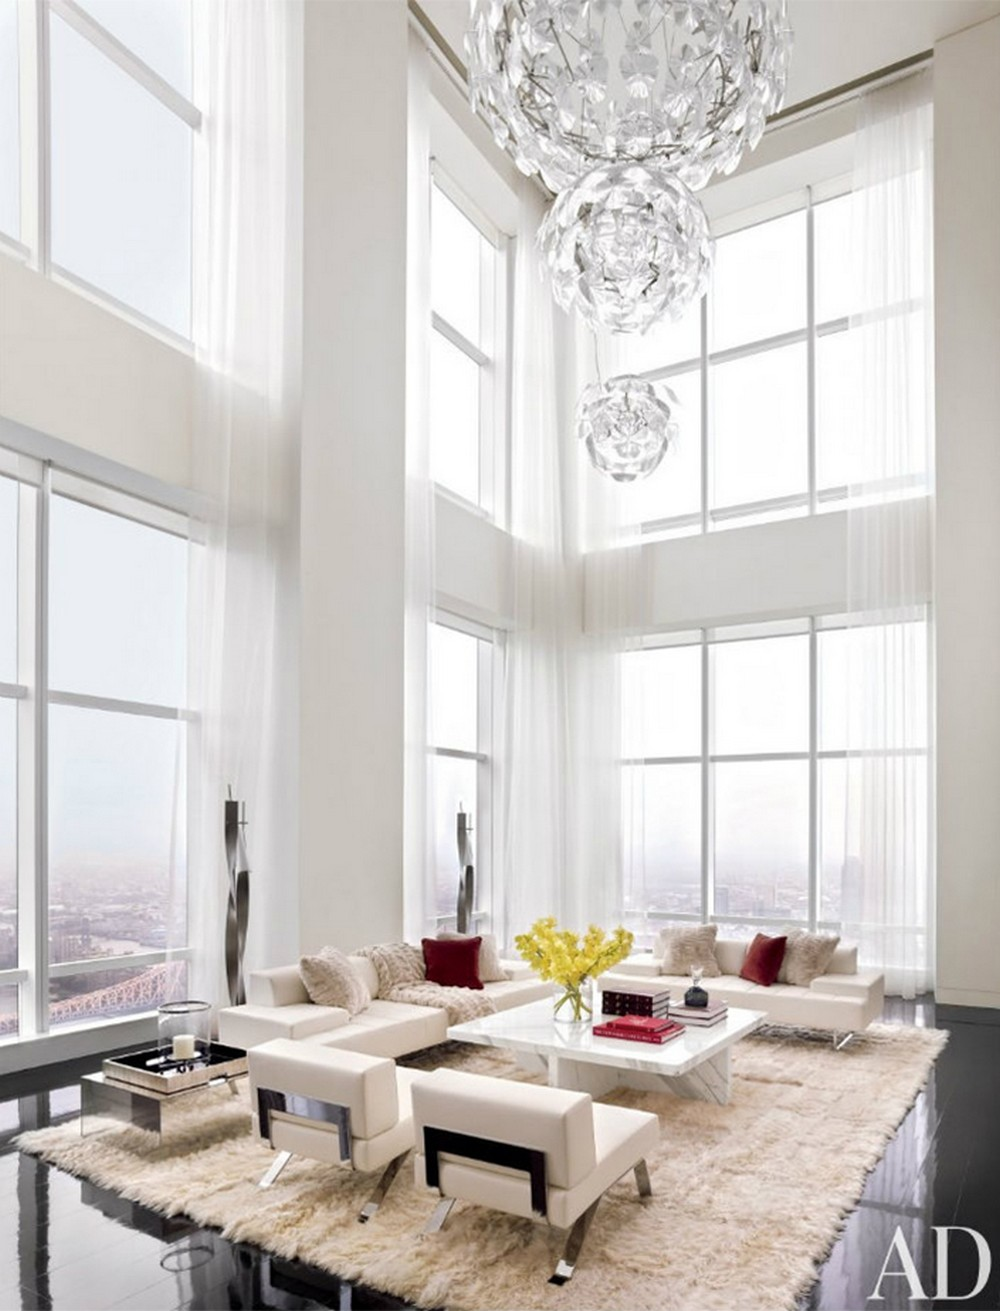 Famous Luxury Design Projects by Renowned American Interior Designers luxury design projects Famous Luxury Design Projects by Renowned American Interior Designers Famous Luxury Design Projects by Renowned American Interior Designers 6